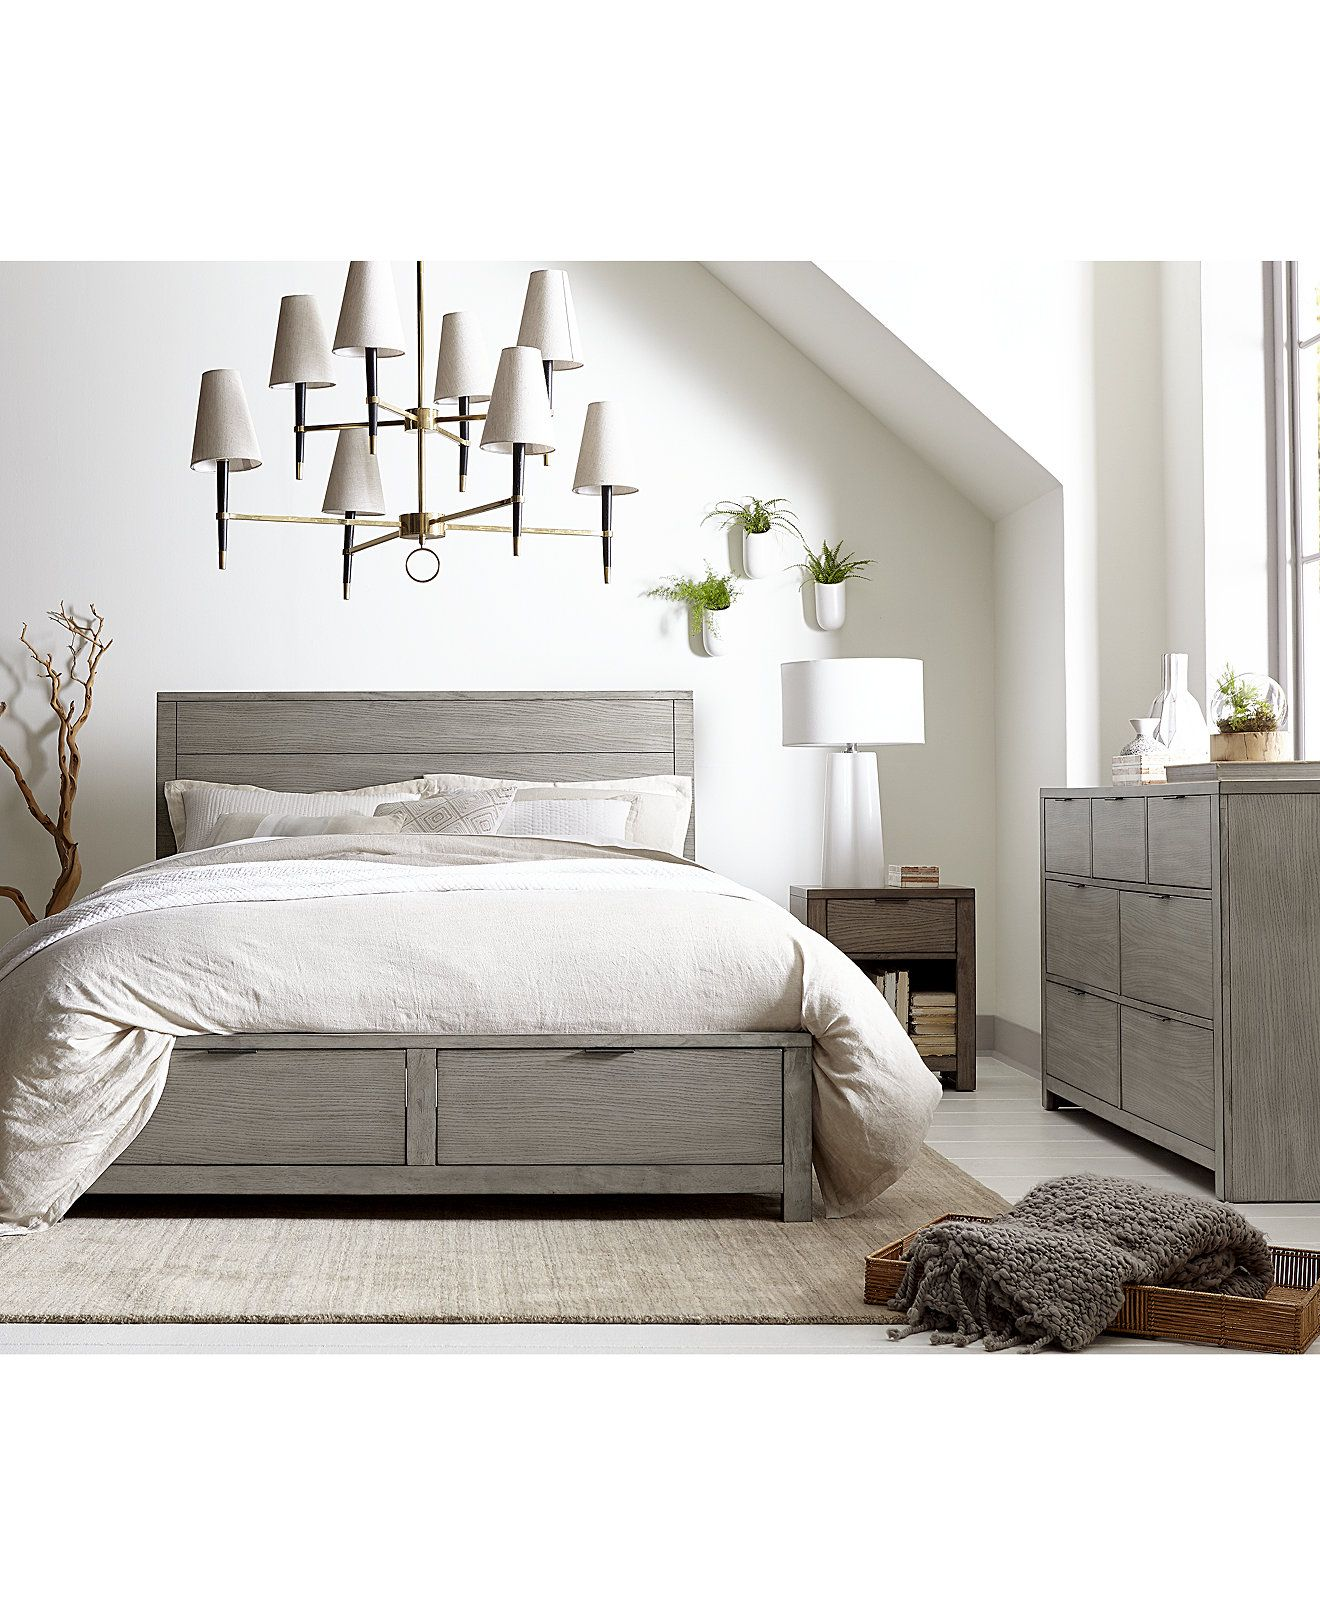 Furniture Tribeca Storage Platform Bedroom Furniture Collection Created For Macy S Reviews Furniture Macy S Storage Furniture Bedroom Grey Bedroom Set Grey Bedroom Furniture